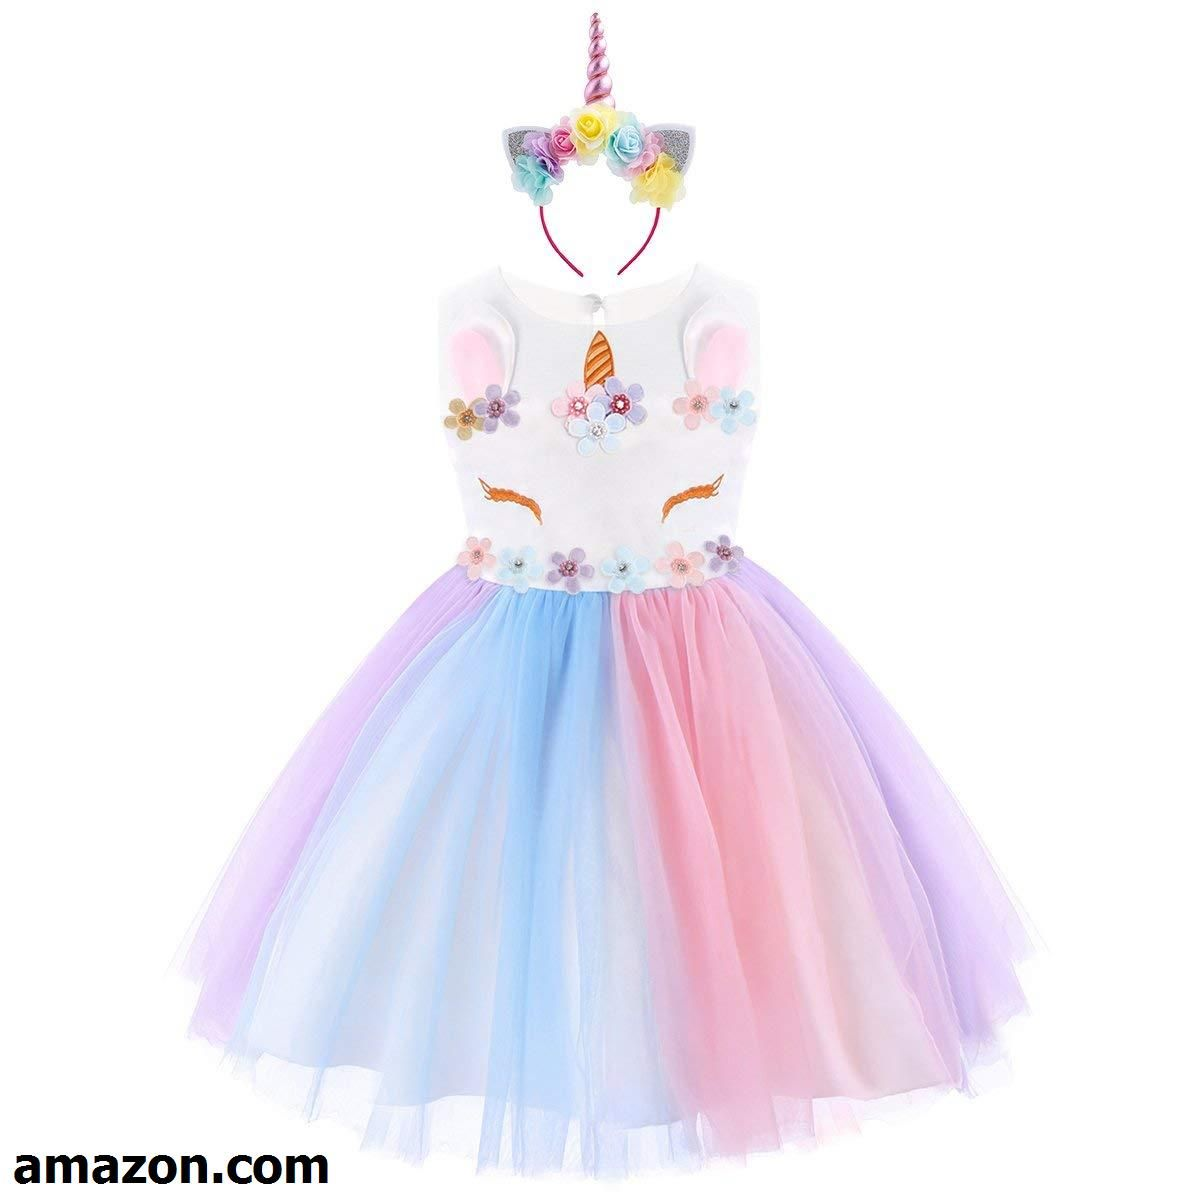 Girls Princess Unicorn Costume Tulle Tutu Dress Summer Sleeveless Costume Birthd